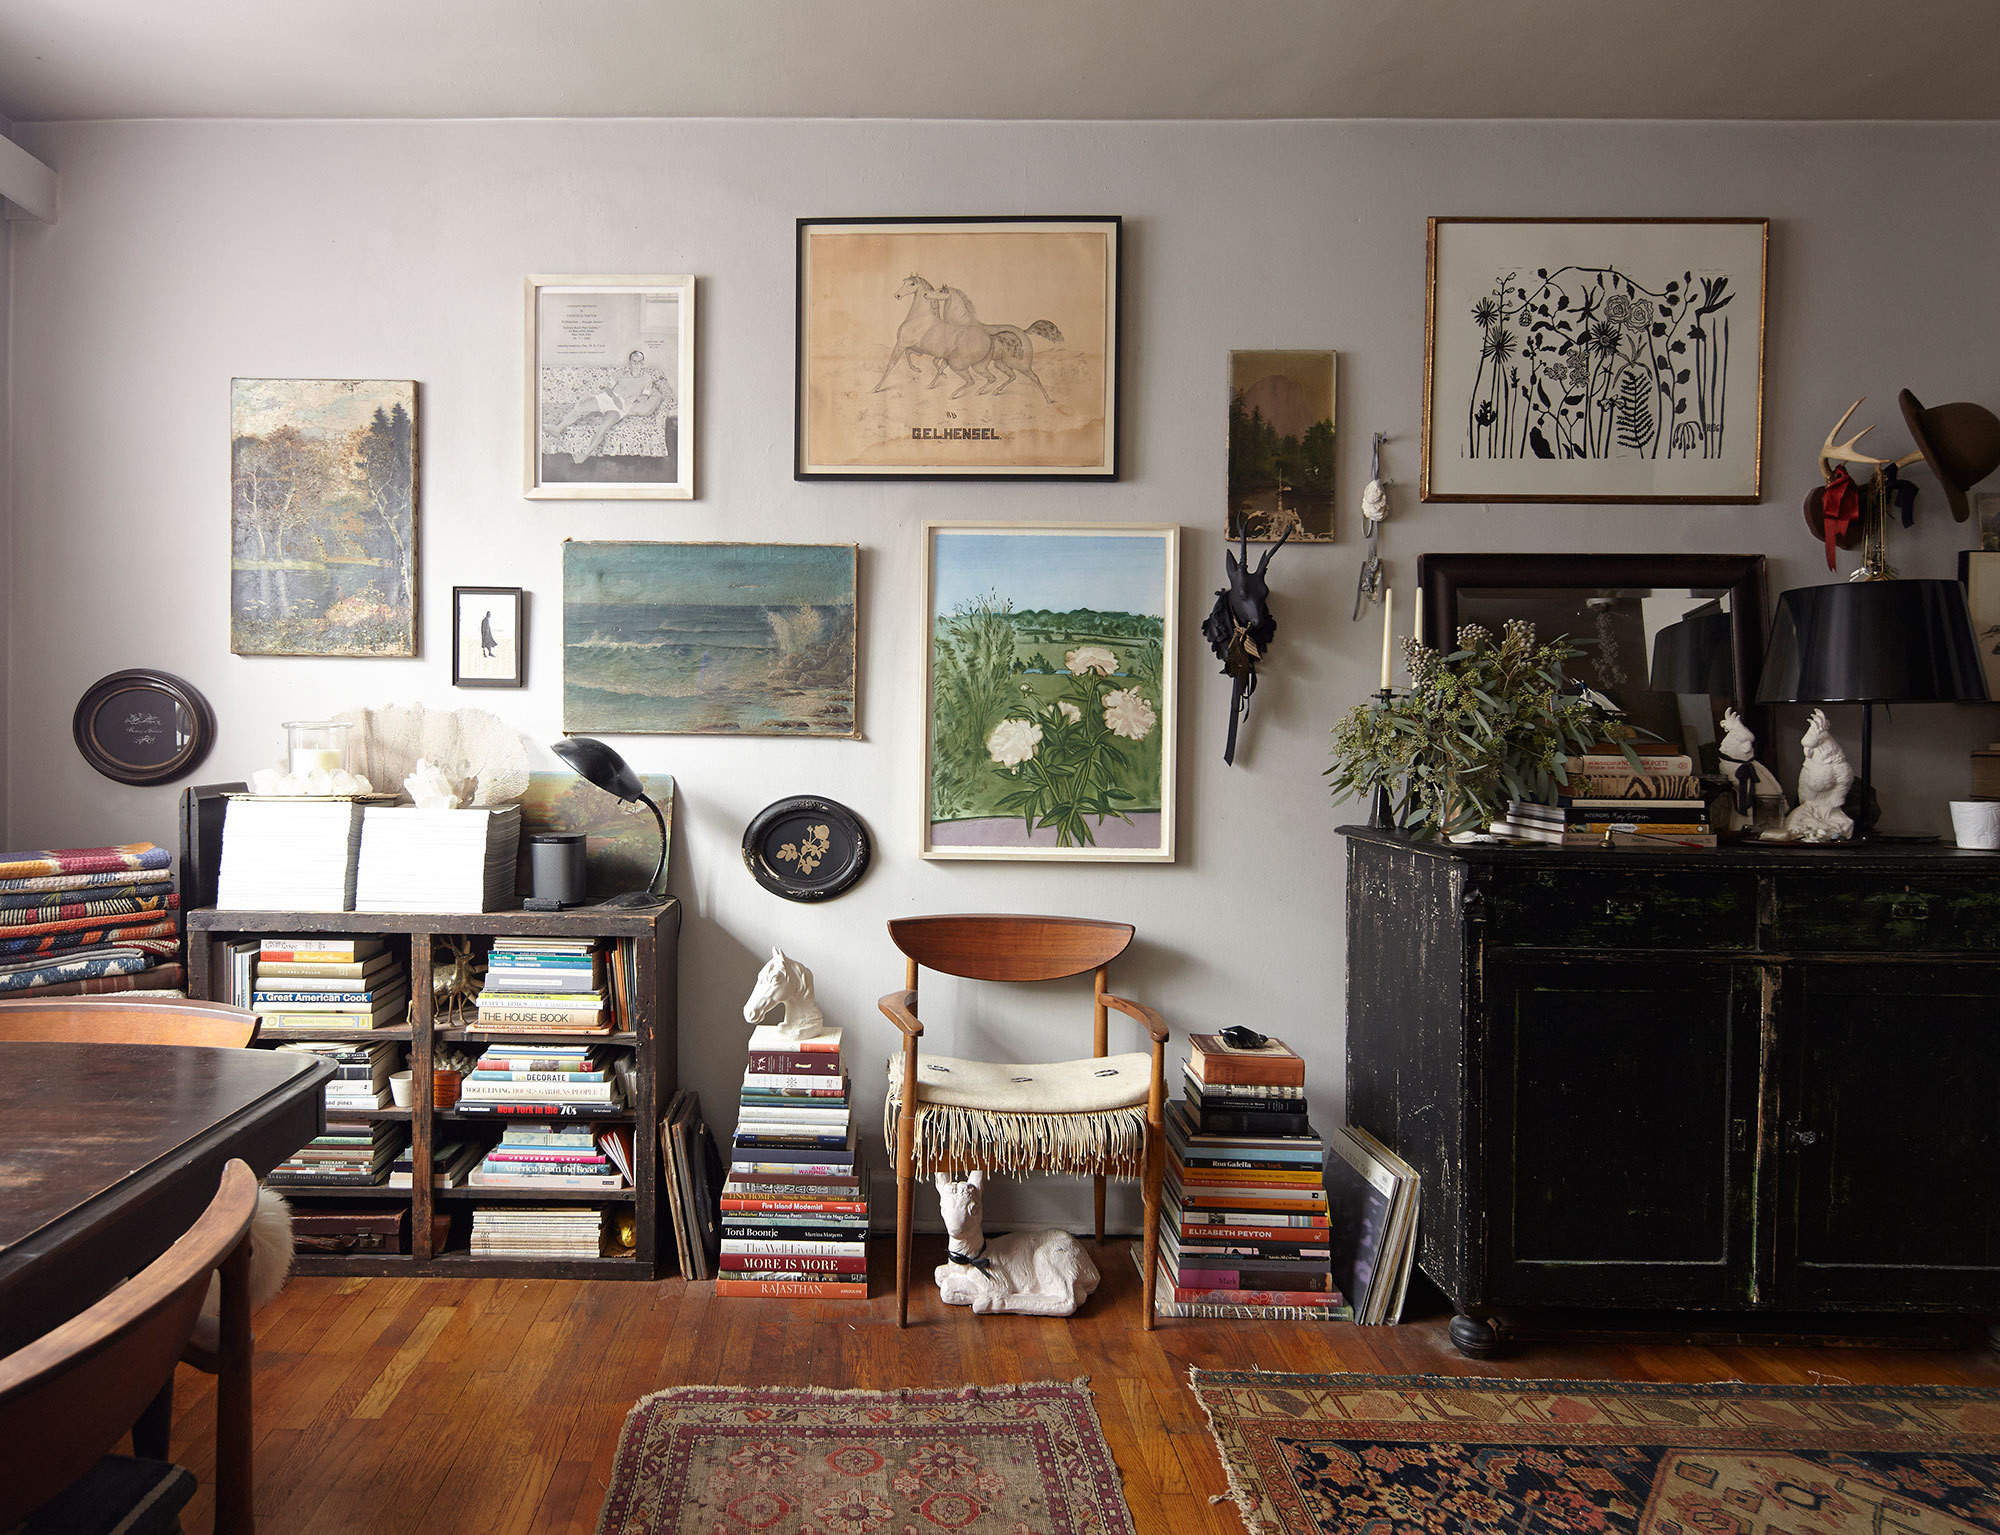 Genial The Main Living Area Of Ann Stephenson And Lori Scaccou0027s East Village Studio,  Filled With